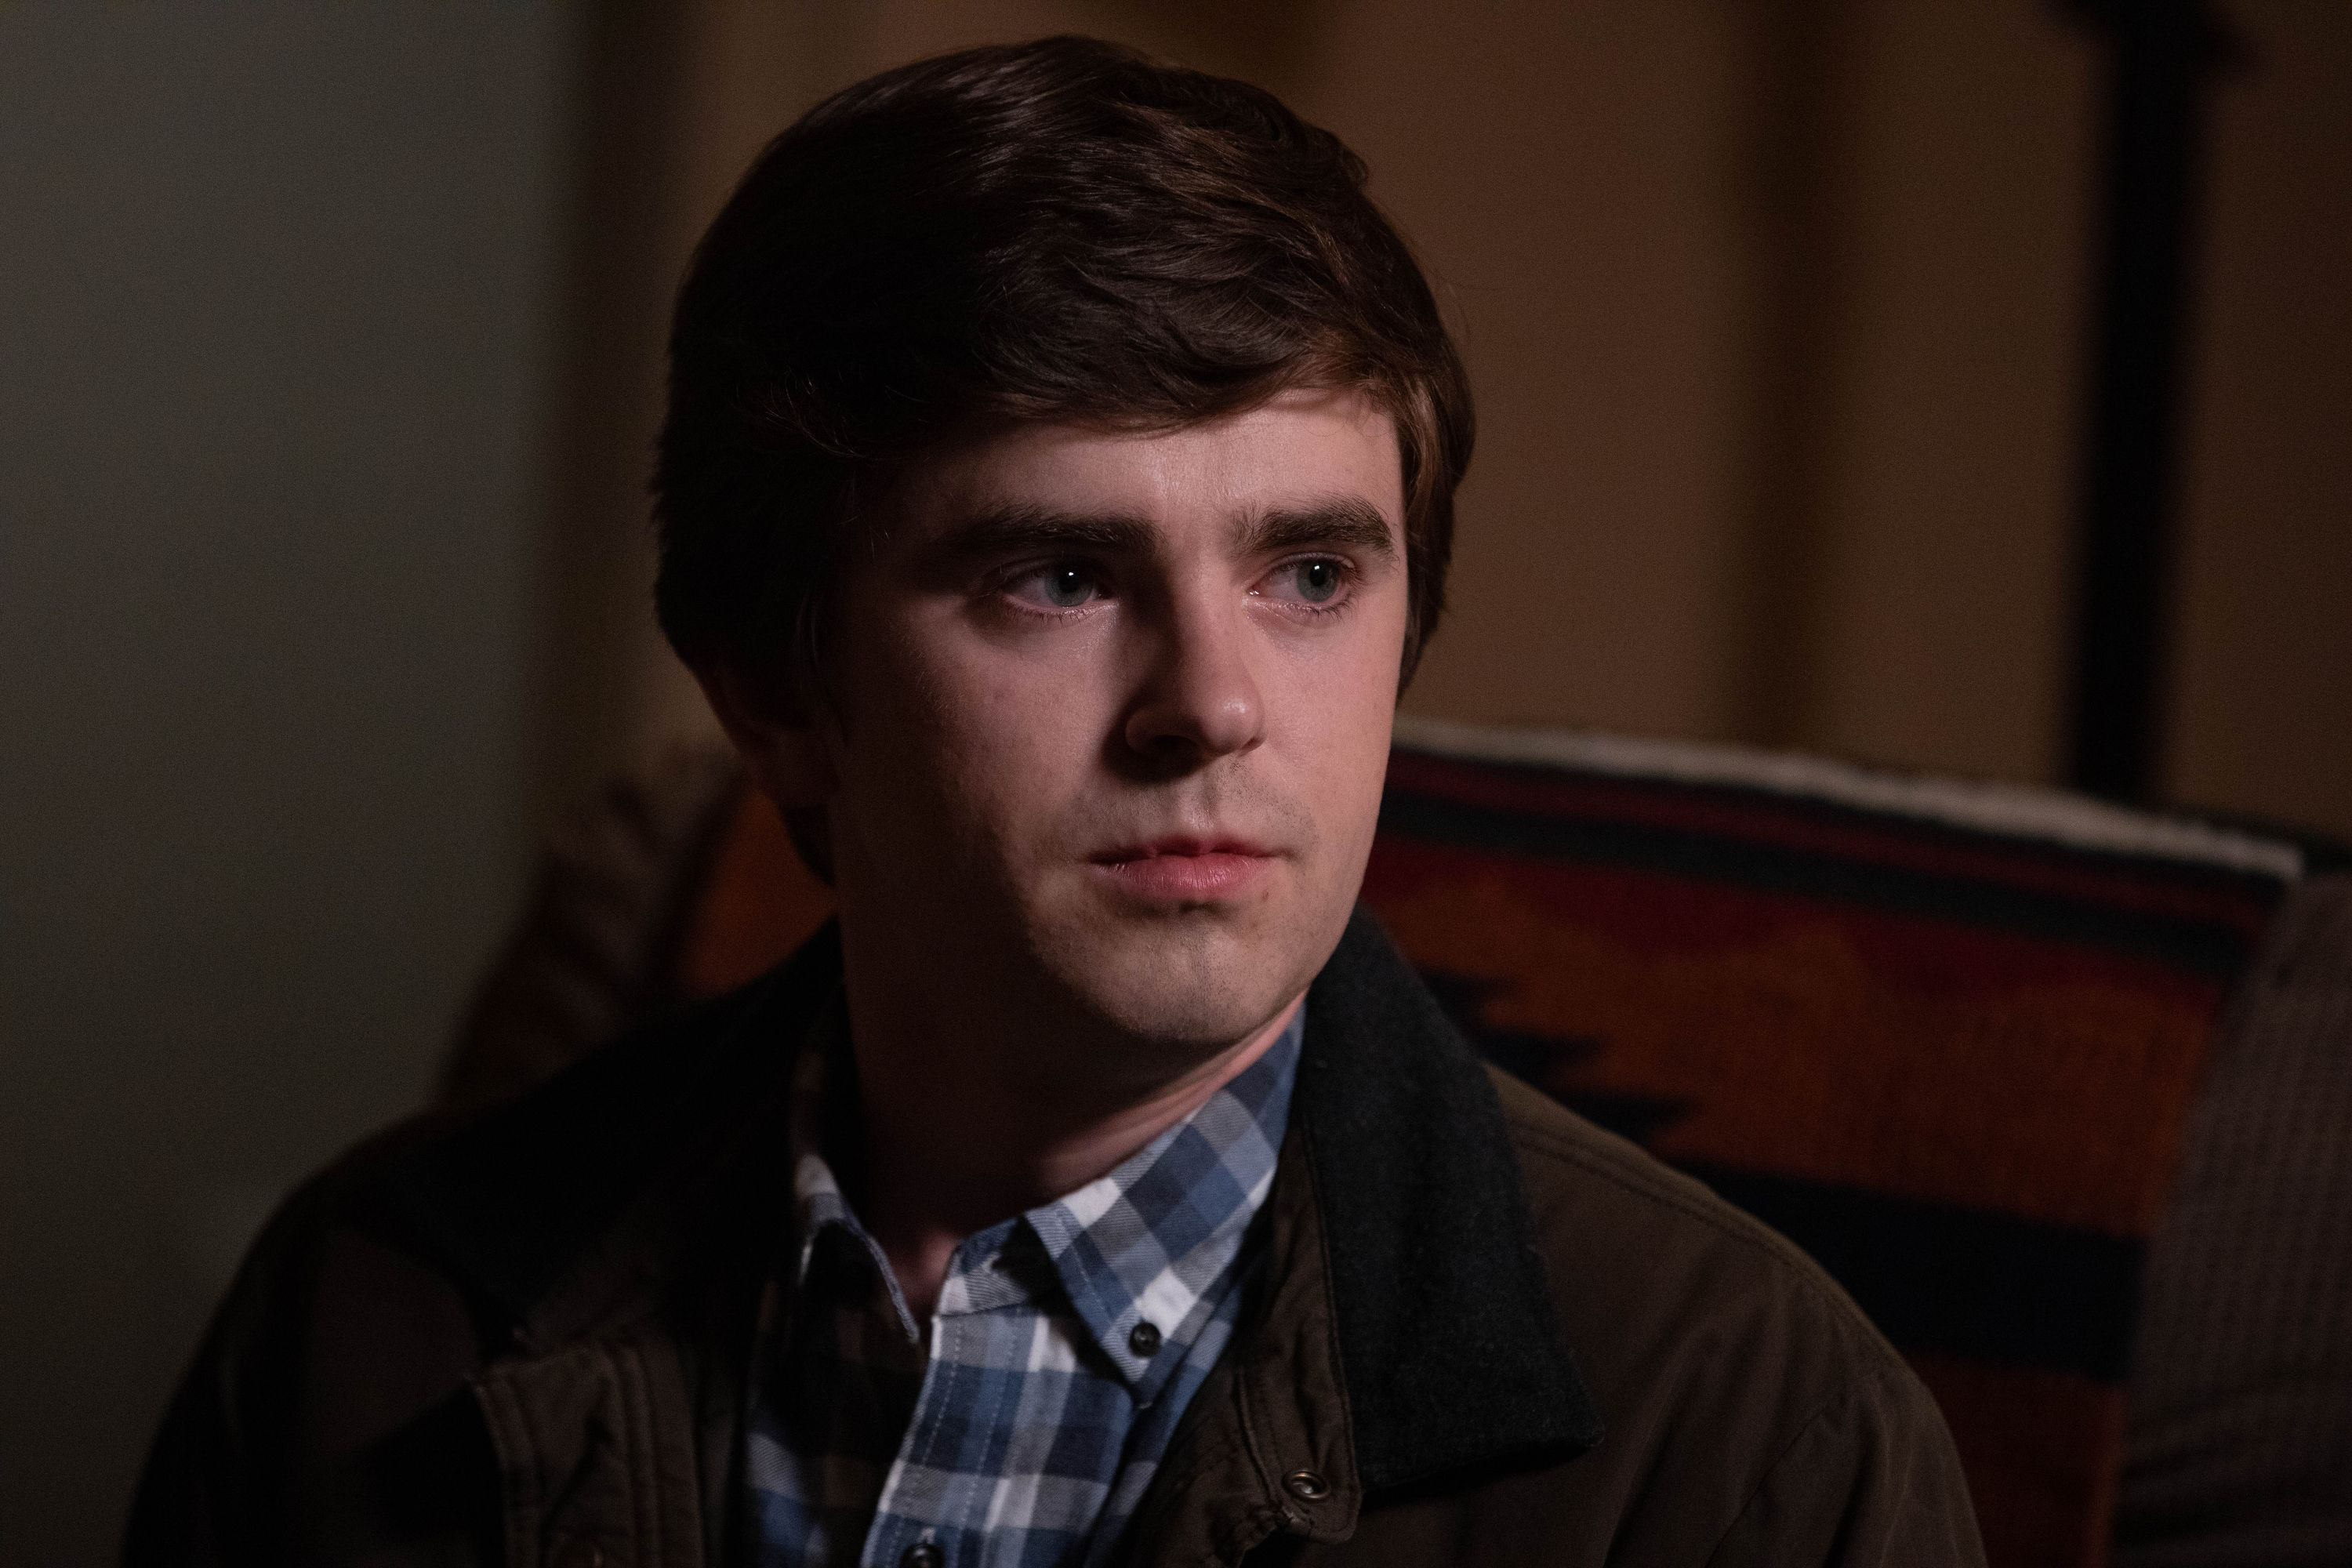 'The Good Doctor' Fans Are Upset About This Week's Episode News